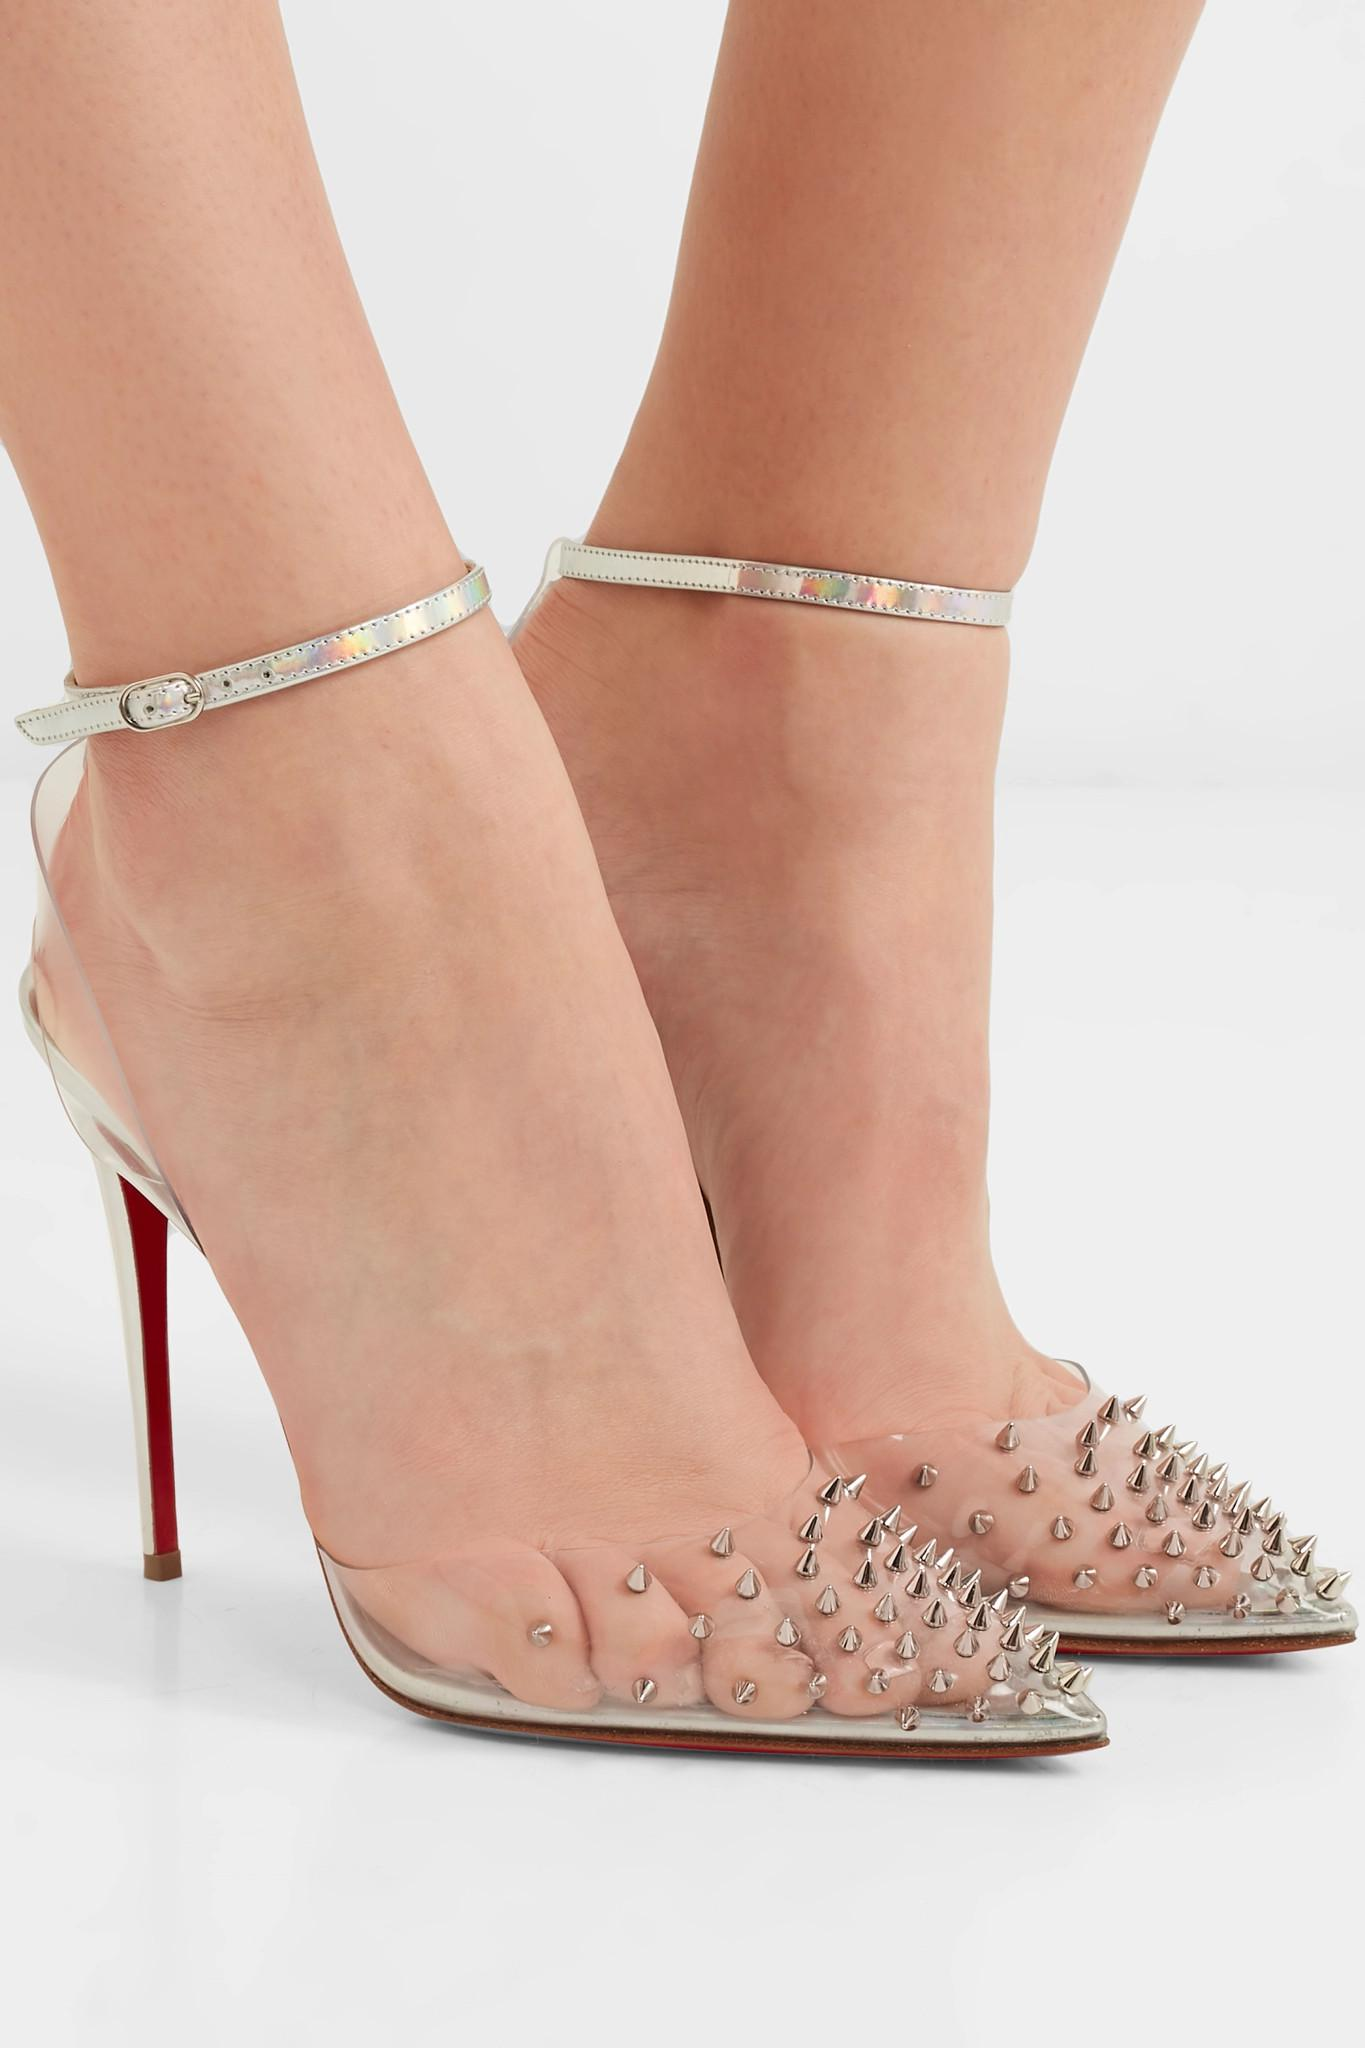 6e3c9990f1e9 Christian Louboutin - Metallic Spikoo 100 Spiked Pvc And Iridescent Leather  Pumps - Lyst. View fullscreen